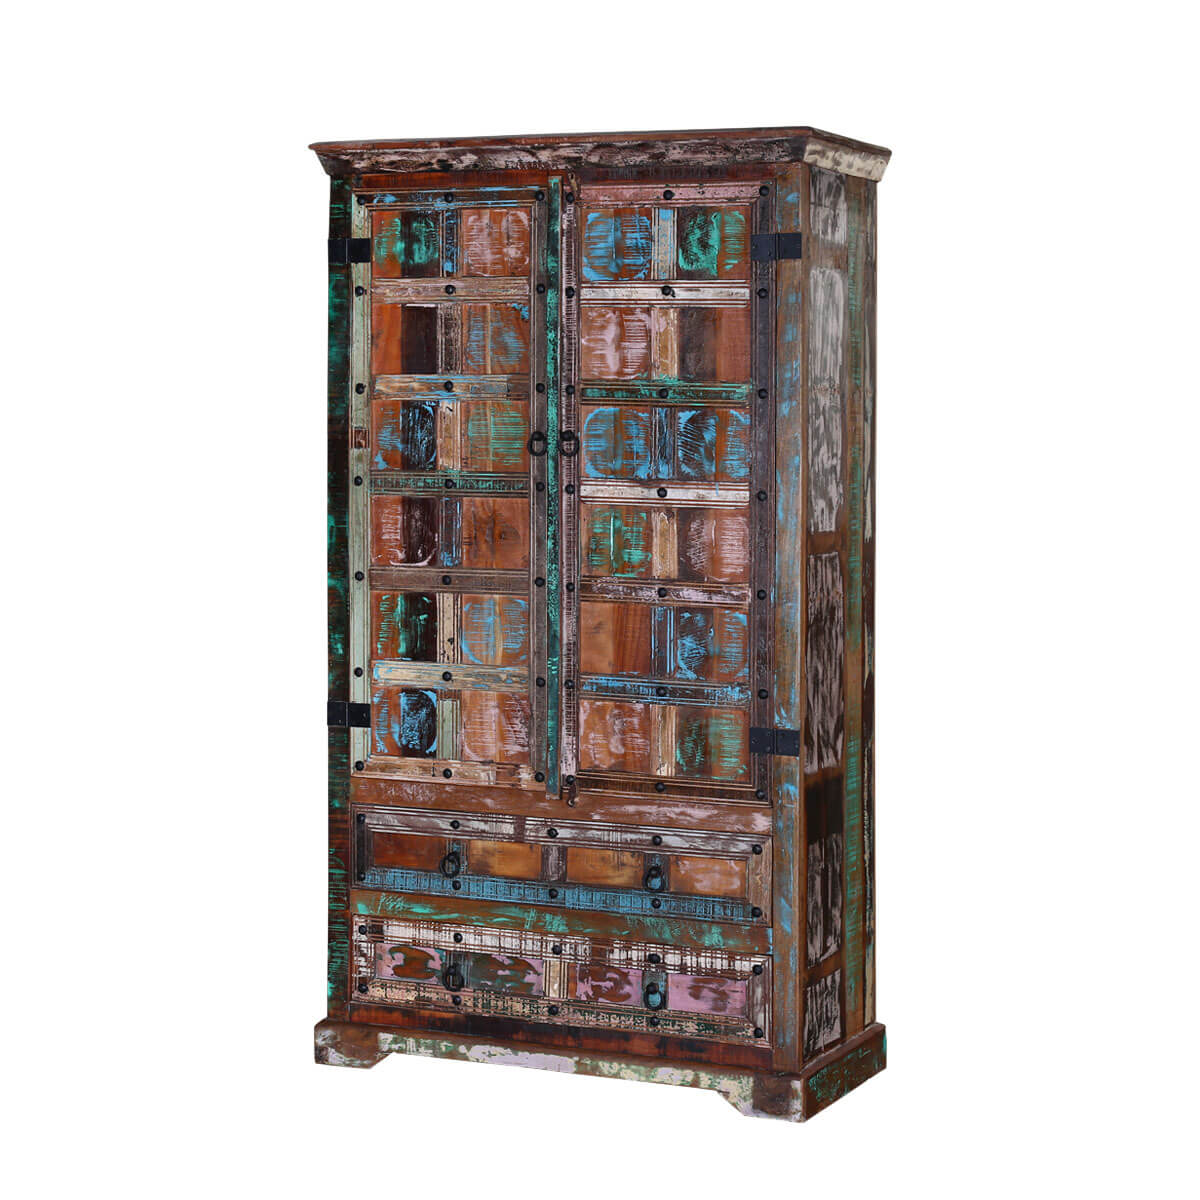 Rustic Color Patches Reclaimed Wood Armoire Storage Cabinet - Color Patches Reclaimed Wood Armoire Storage Cabinet